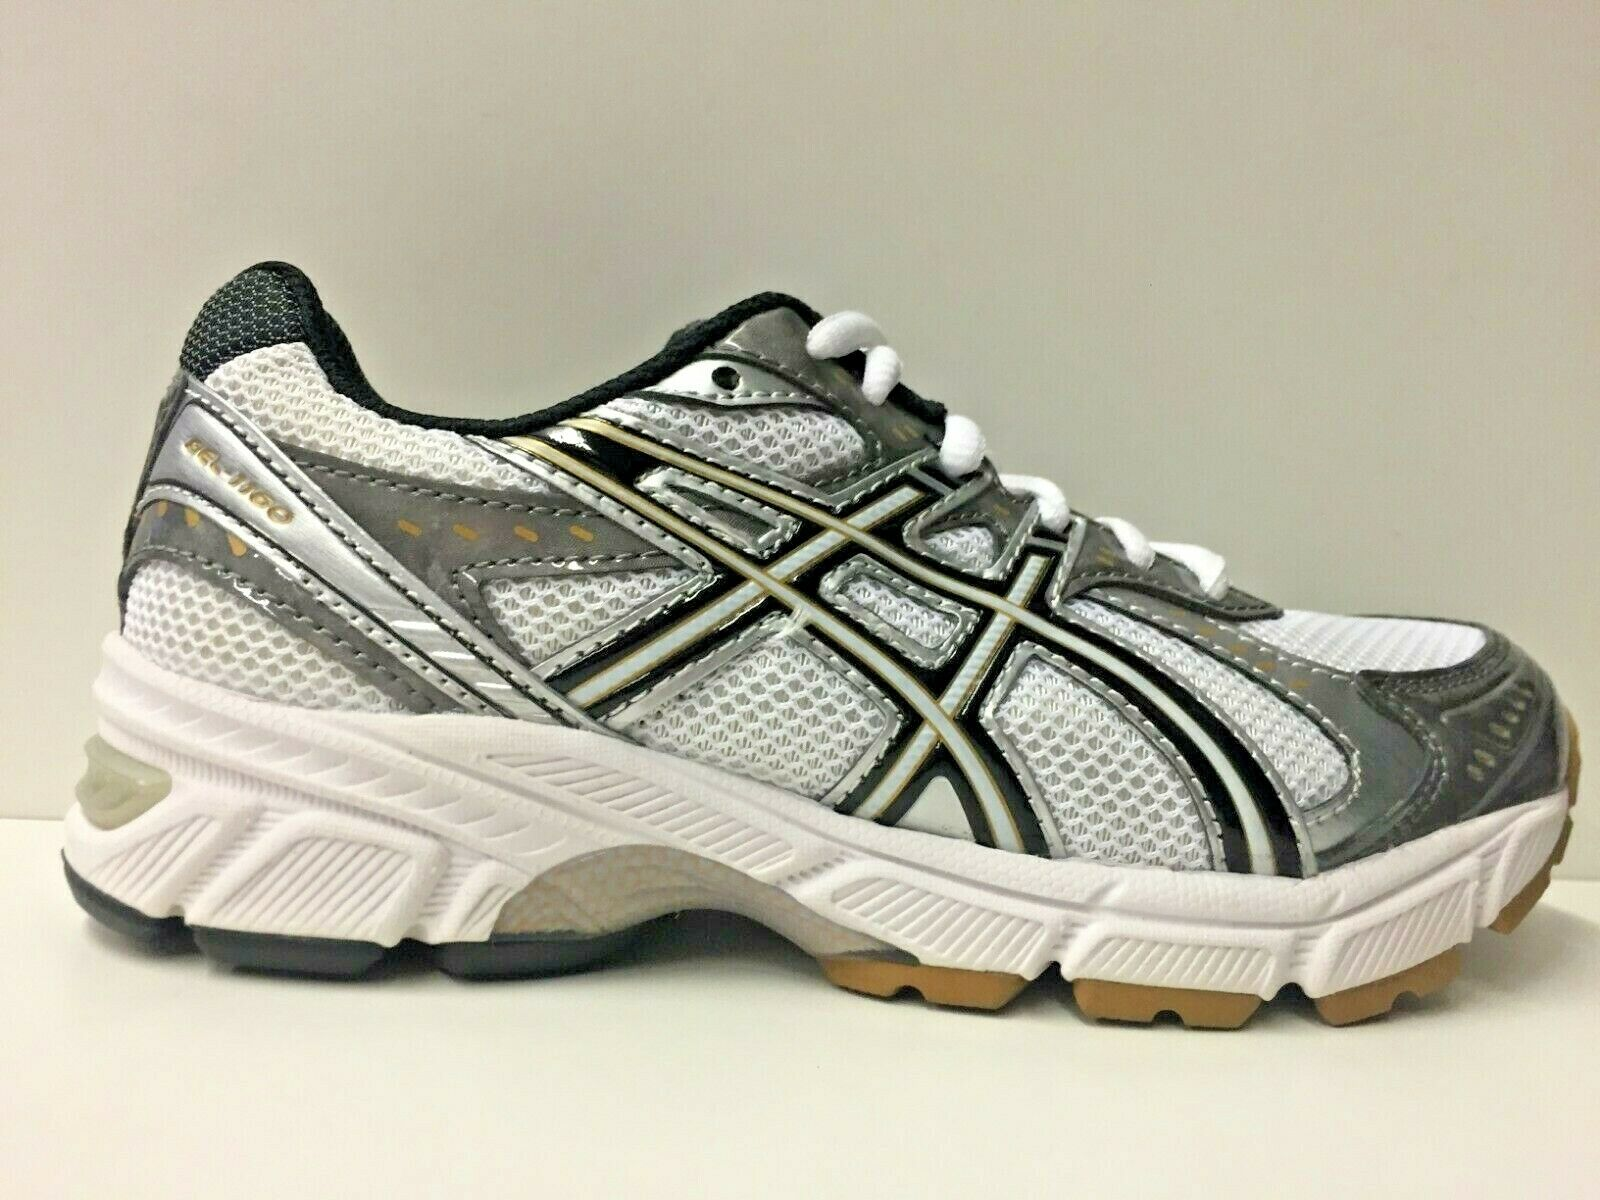 SCARPE SNEAKERS DONNA ASICS ORIGINALE GEL 1160 GS C038N PELLE P/E NEW